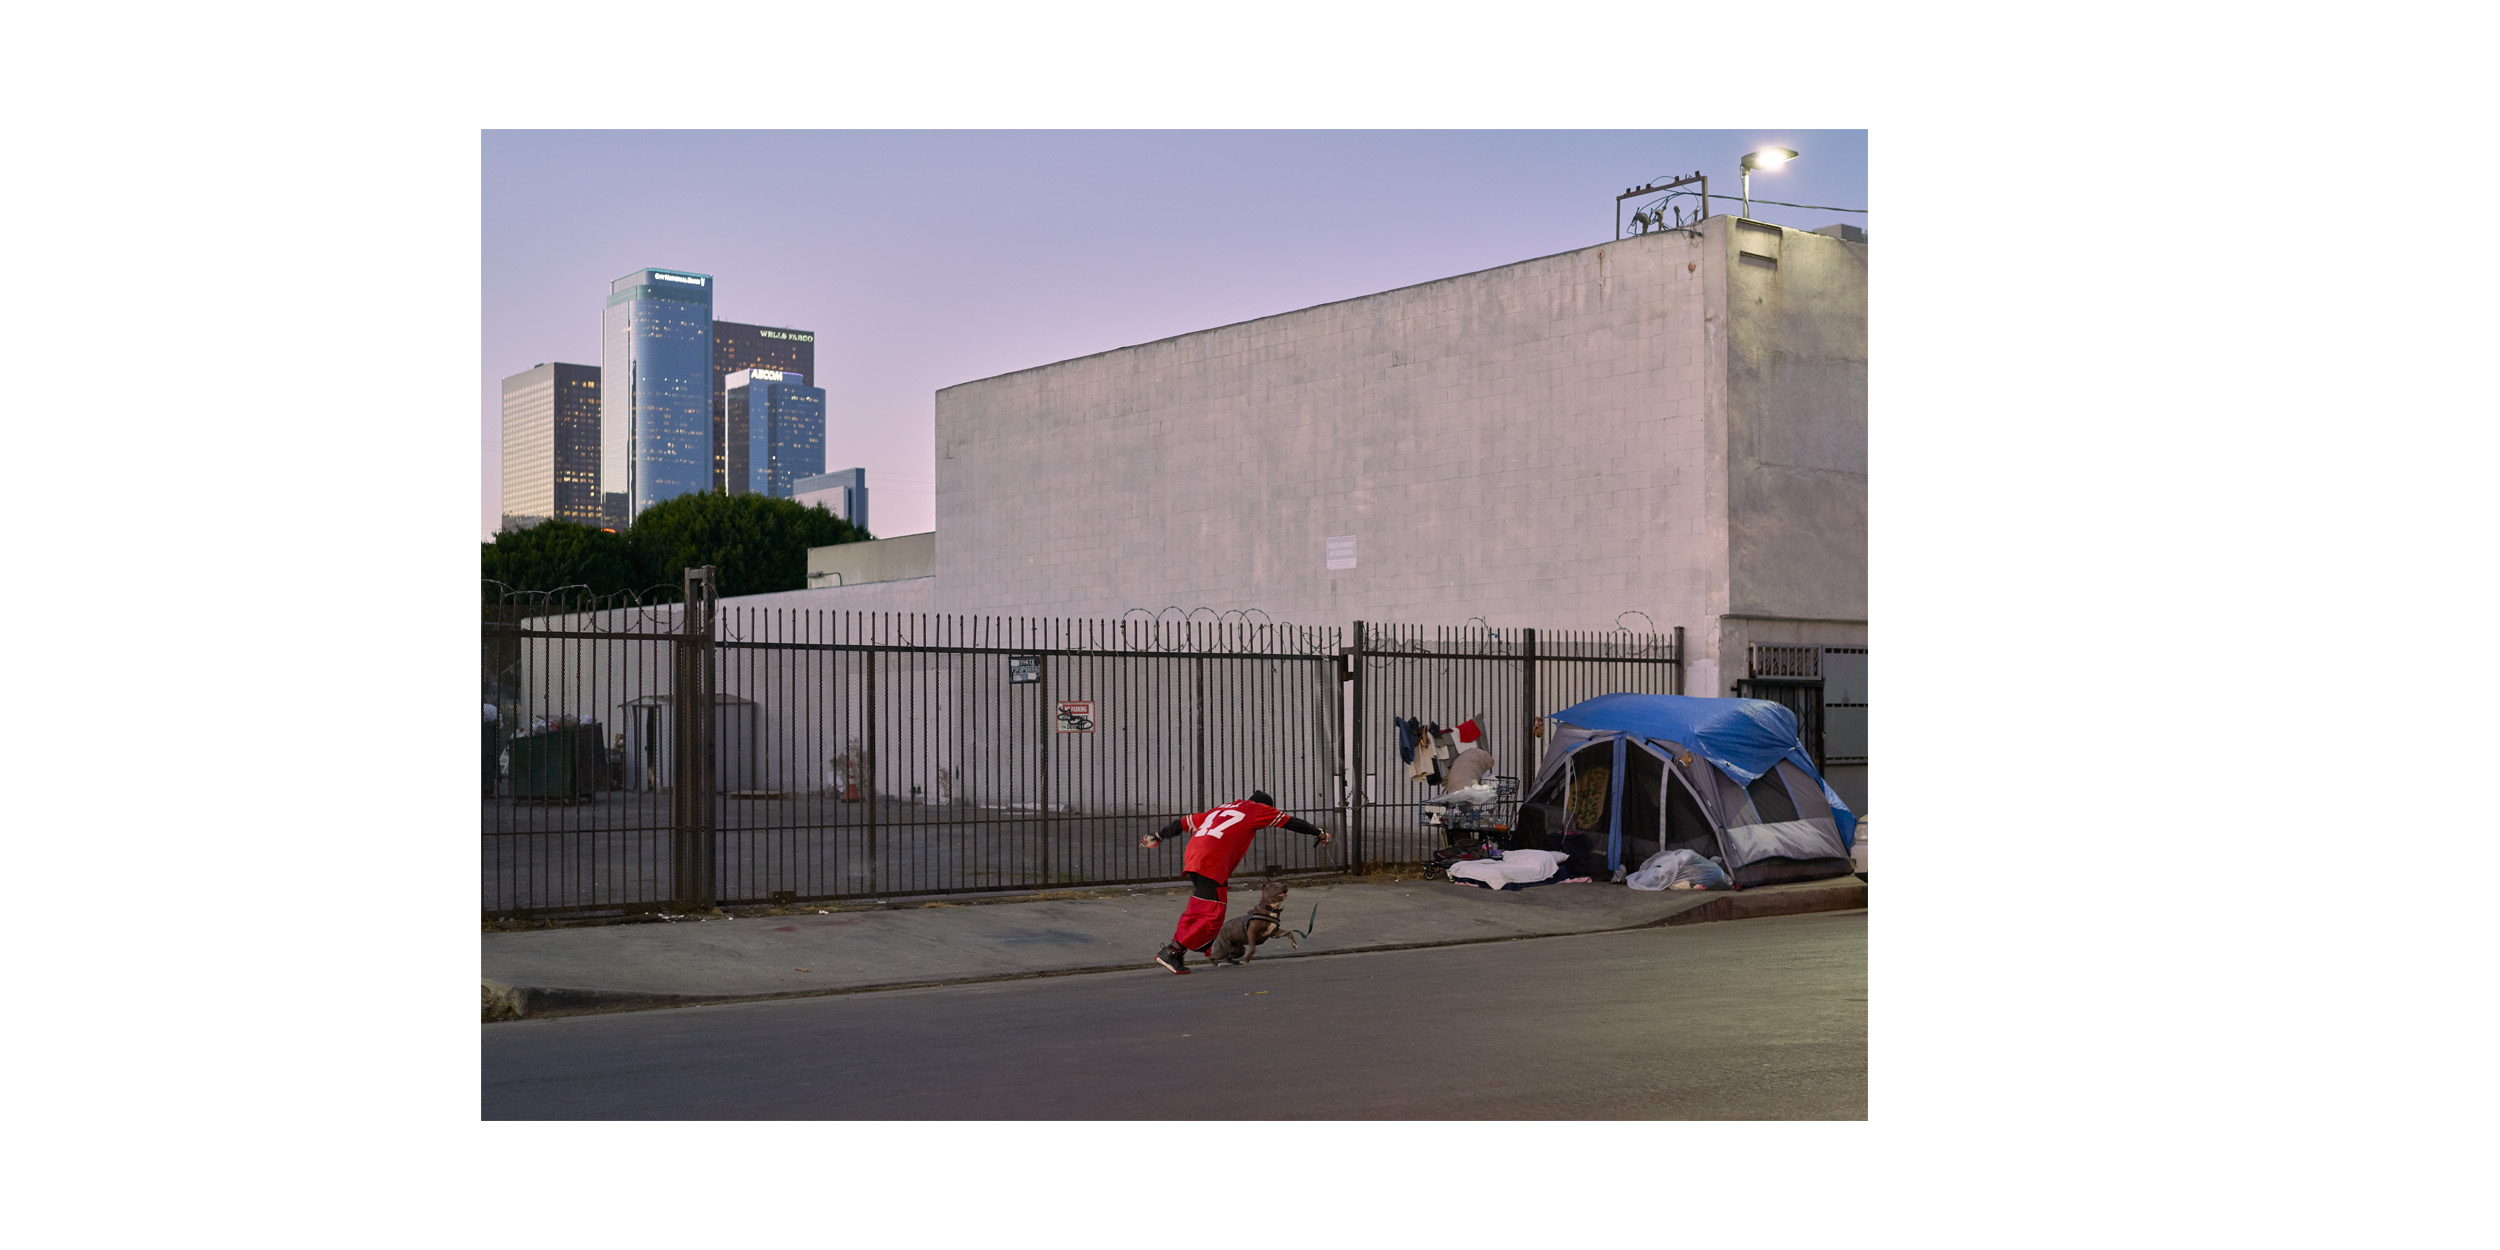 Homelessness in Los Angeles - SOCIETY (FR)